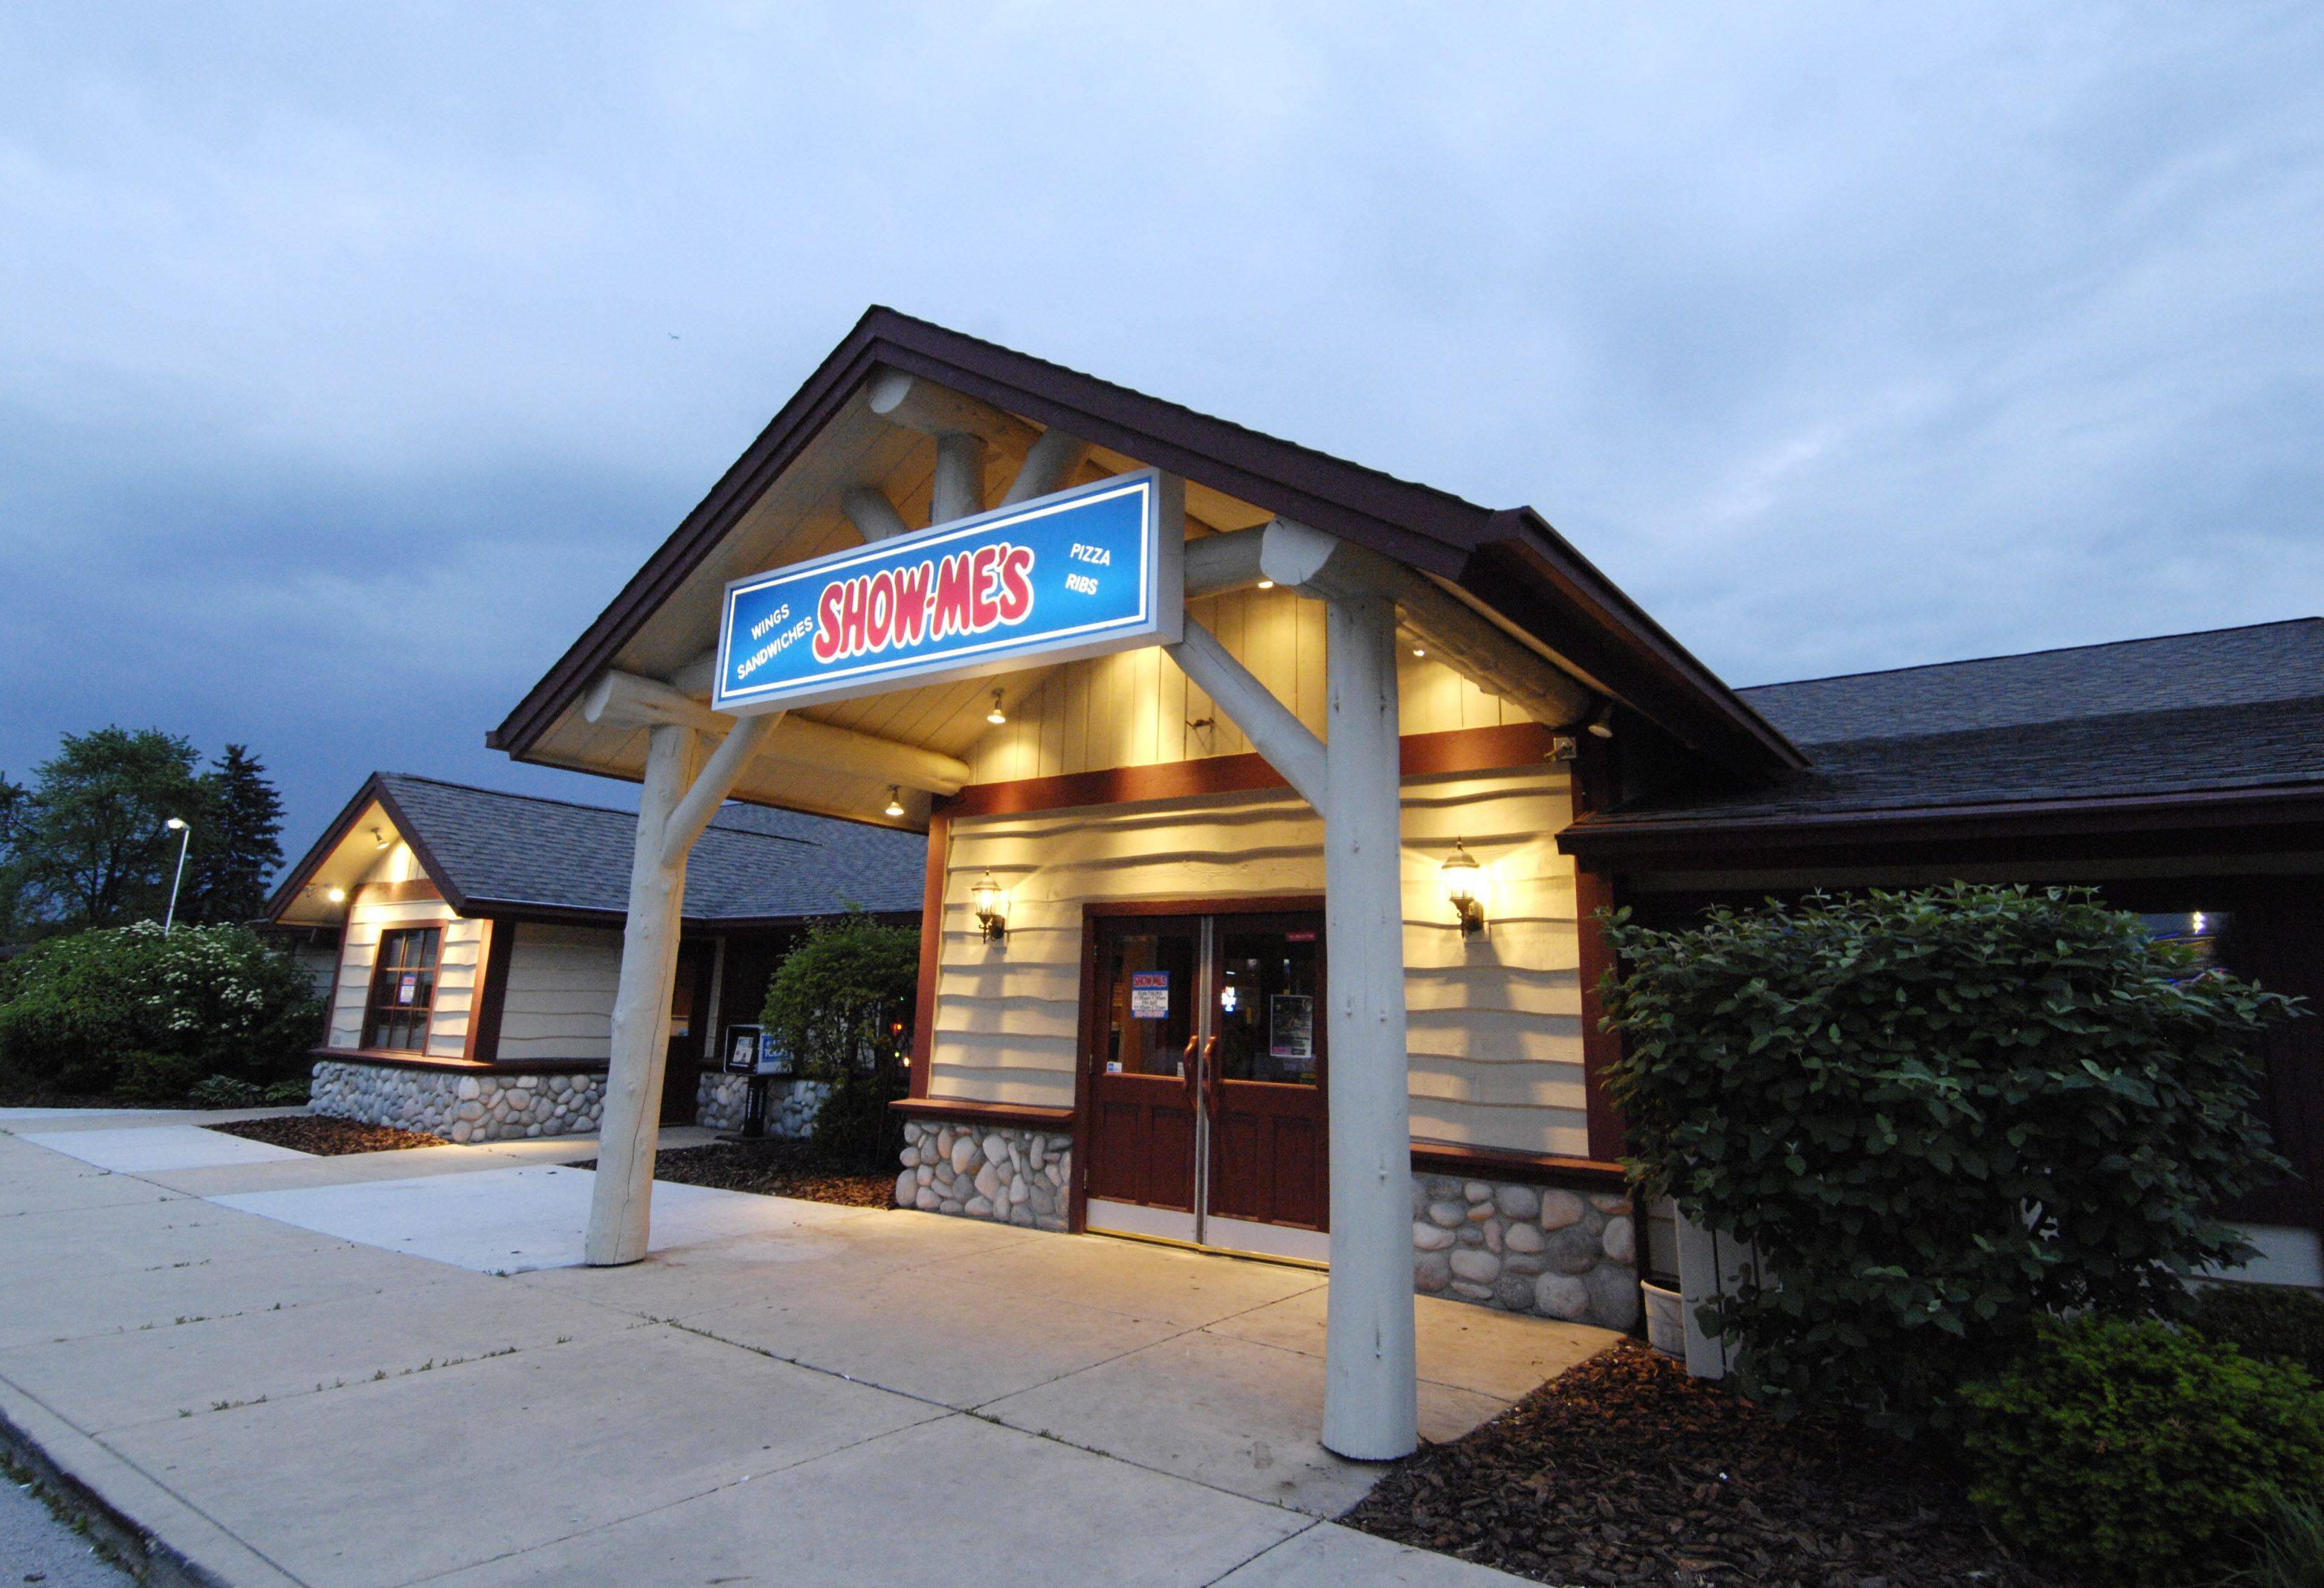 The Show-Me's restaurant and sports bar closed this week after 10 months in business in Naperville.